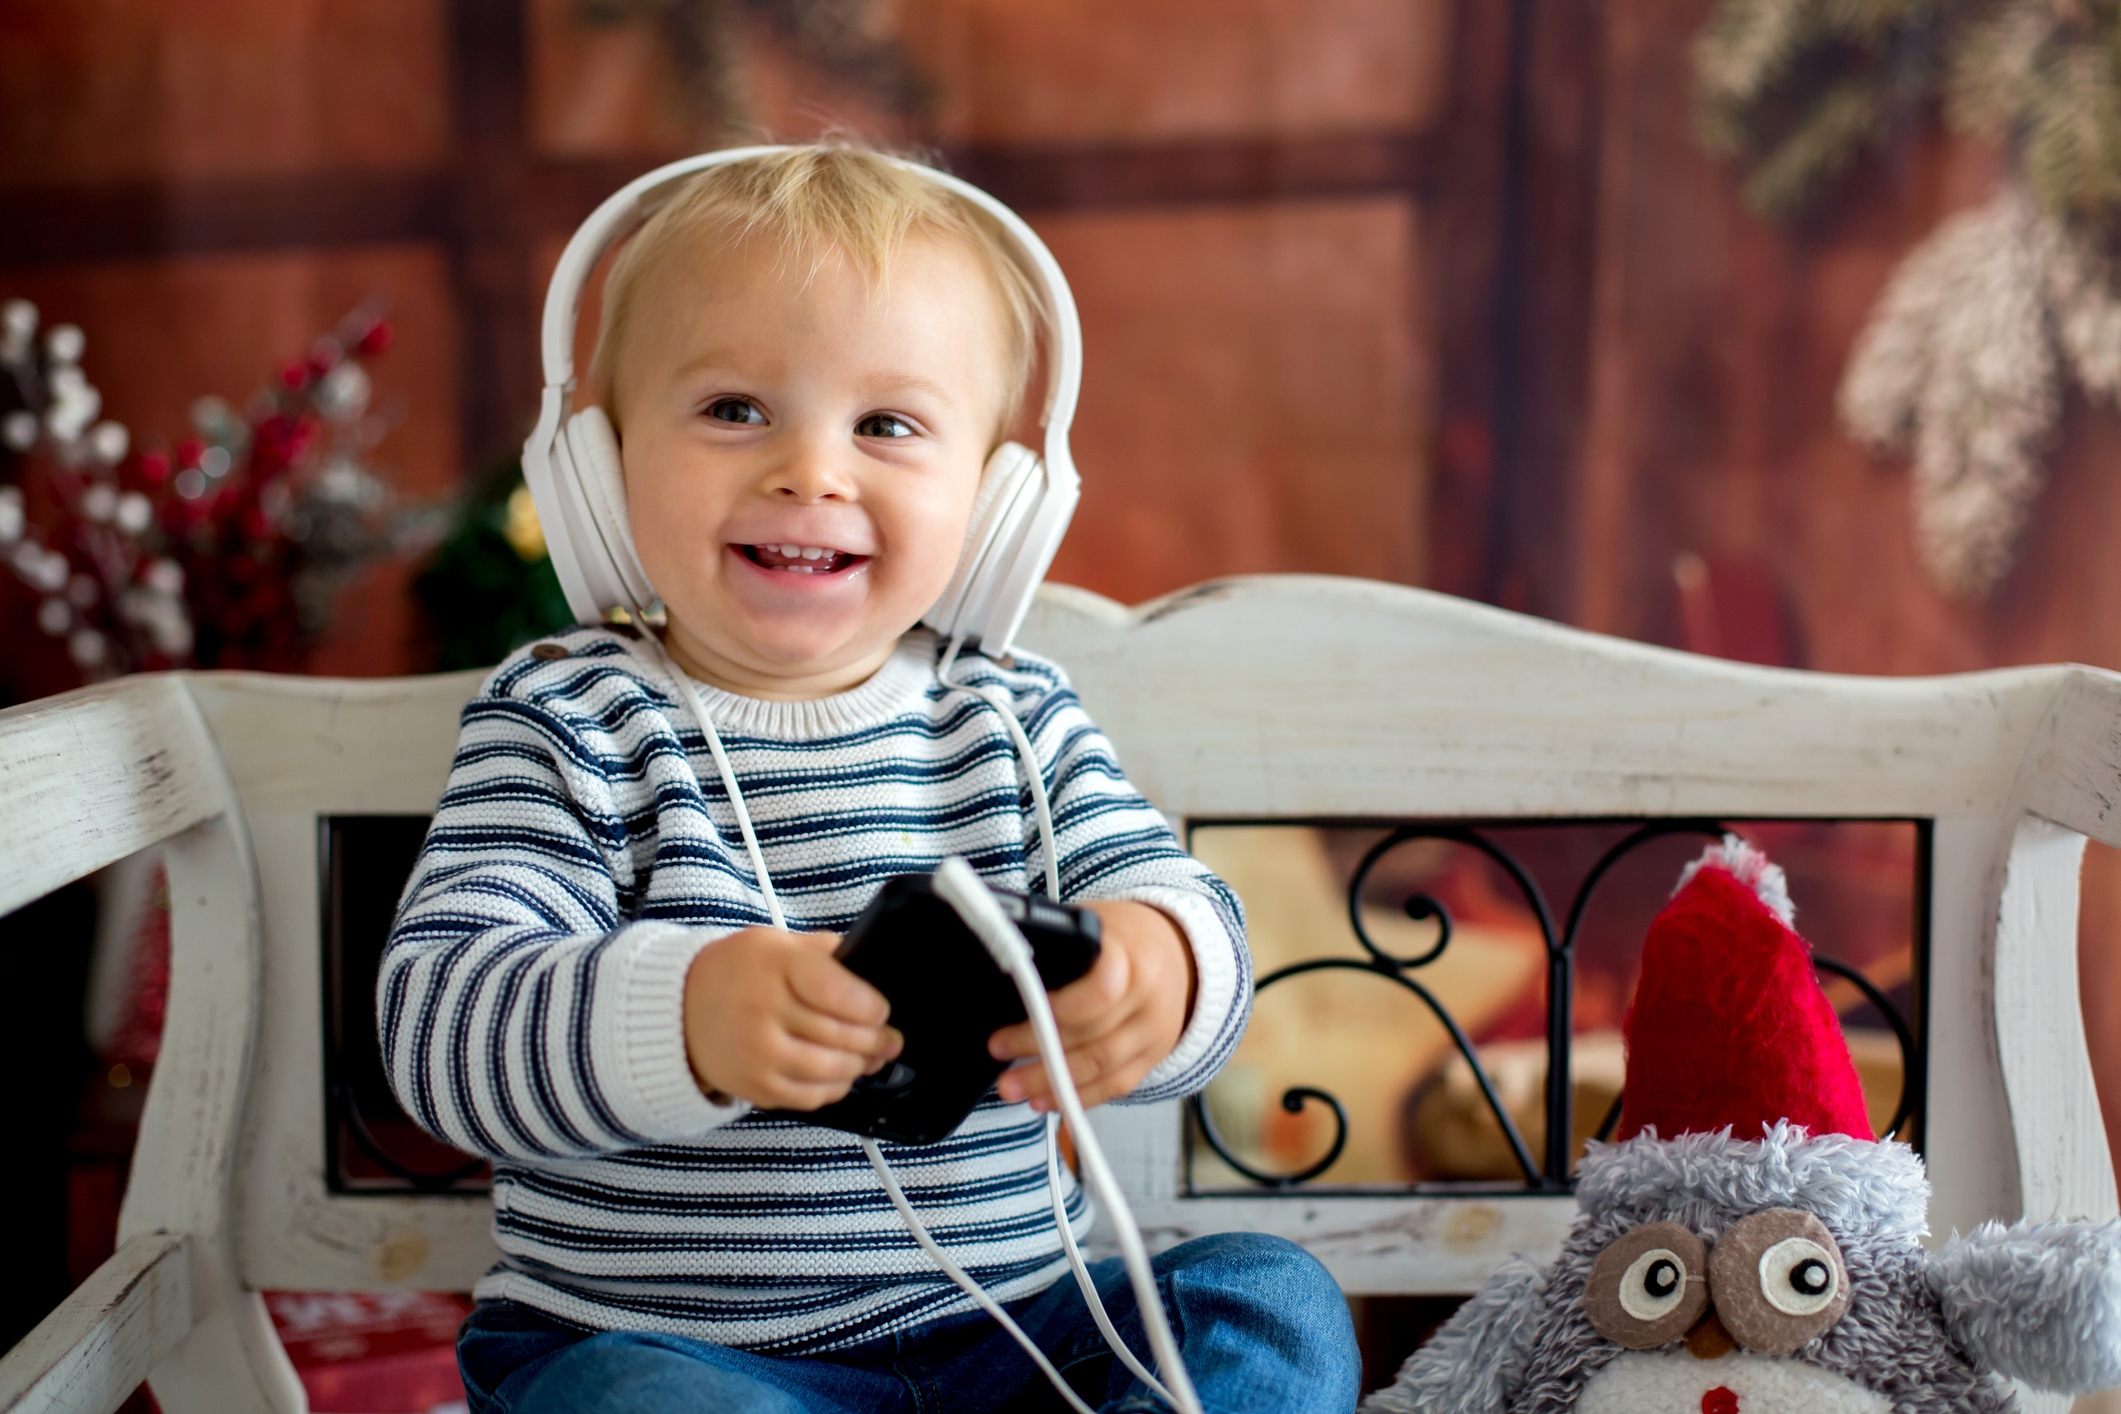 Sweet toddler boy with headphones, listening to music, sitting on rustic bench, christmas decoration behind him